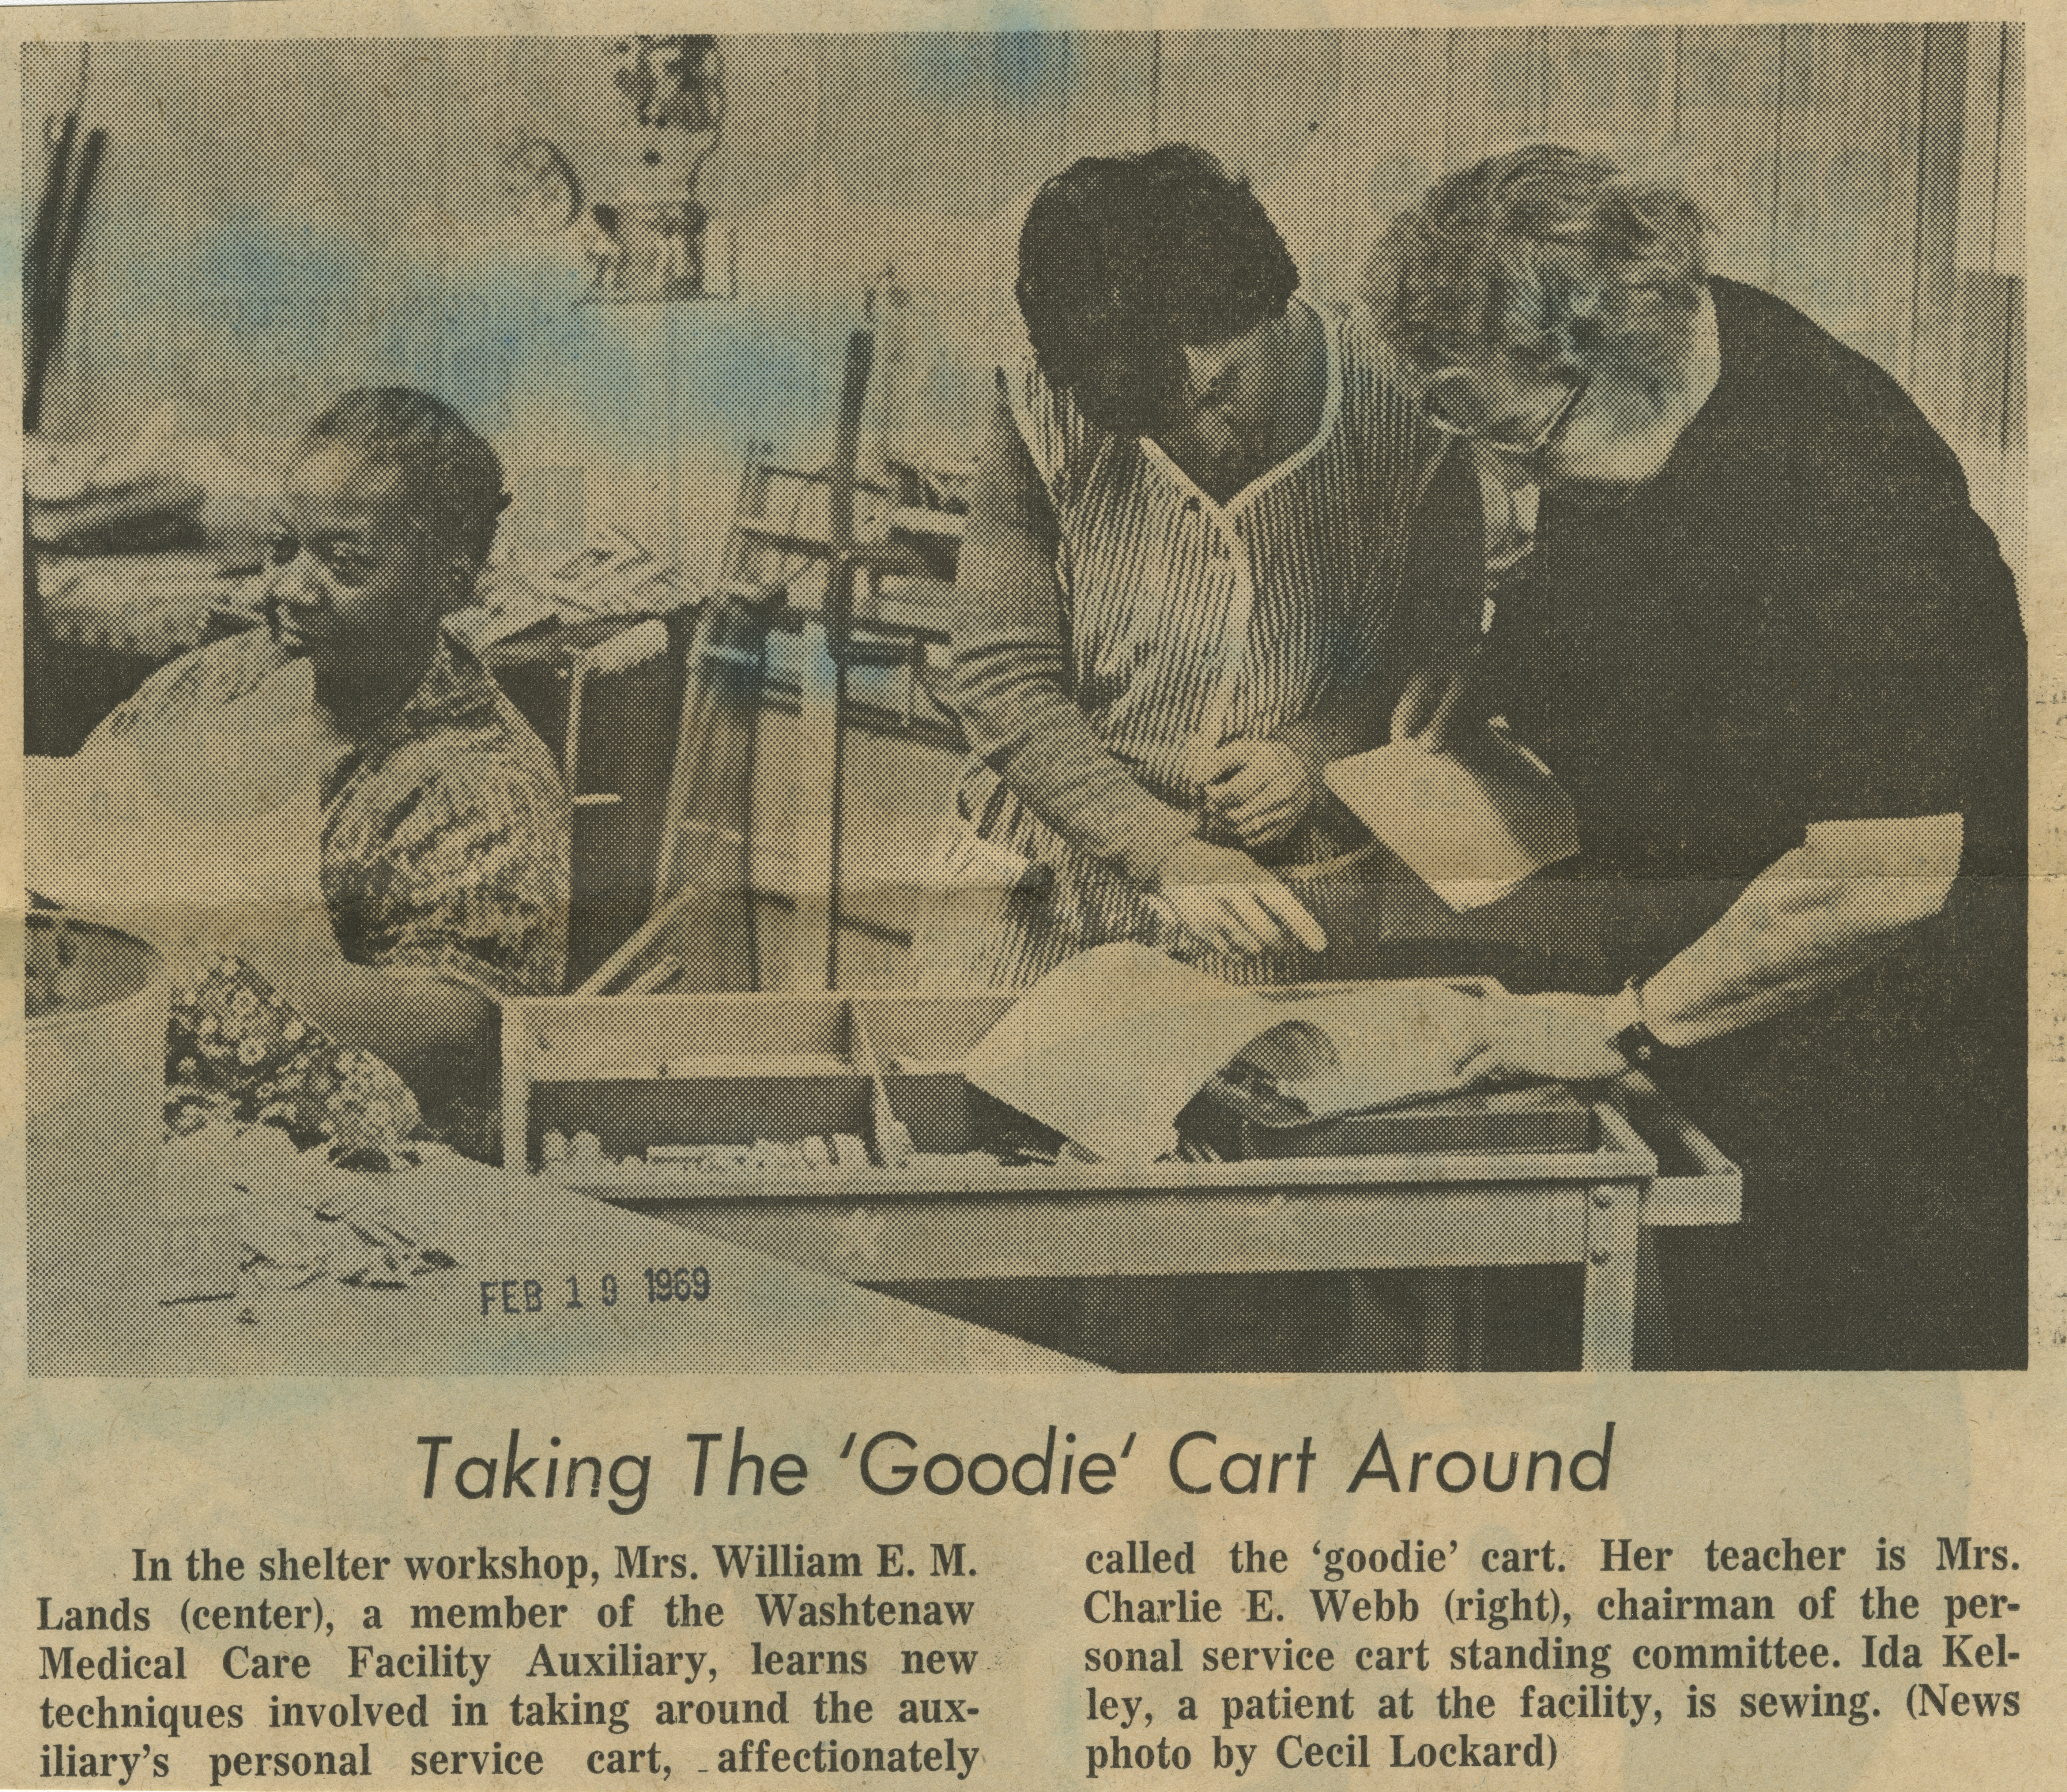 Taking The 'Goodie' Cart Around image